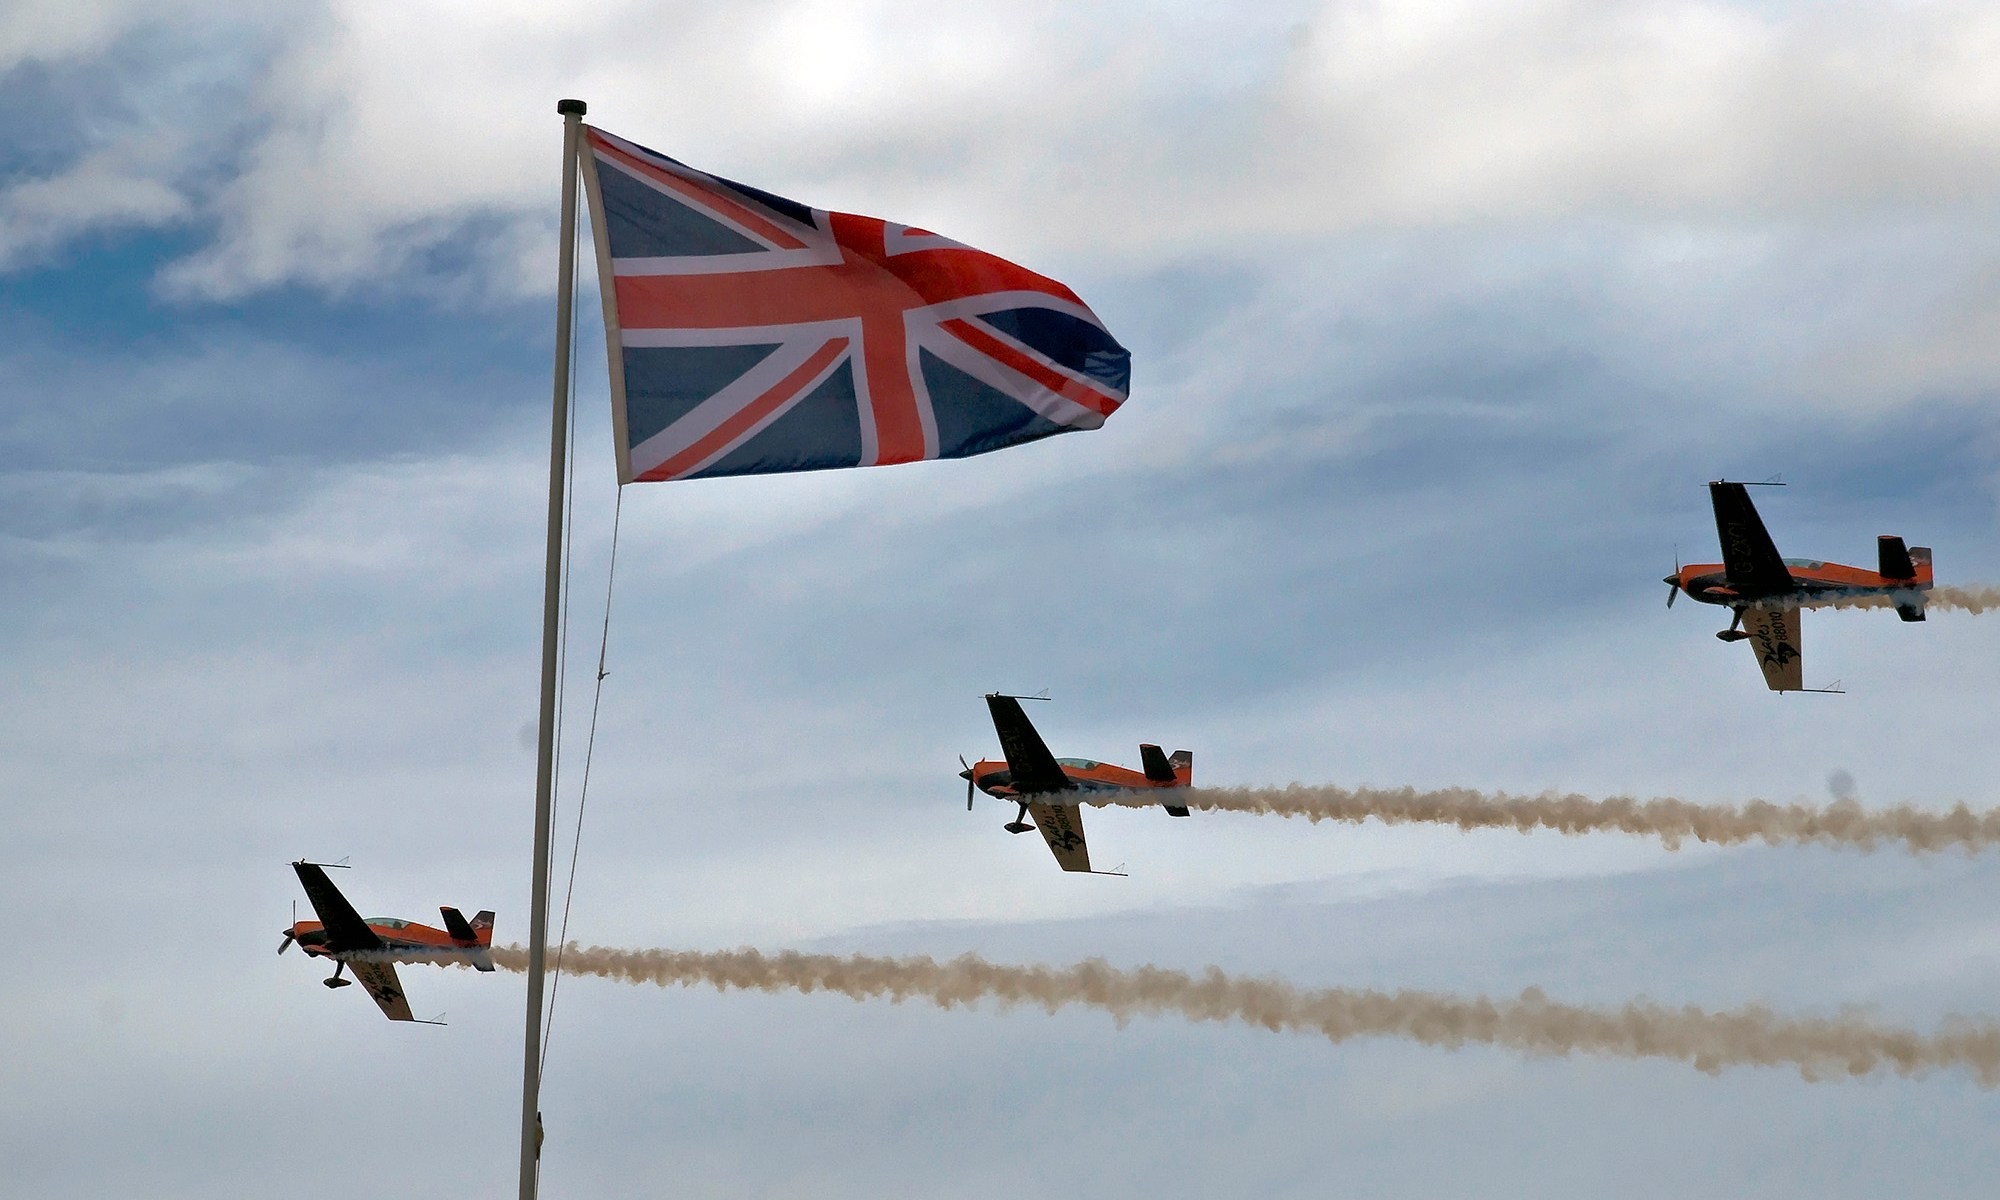 The Blades Aerobatic Team at Southport Airshow